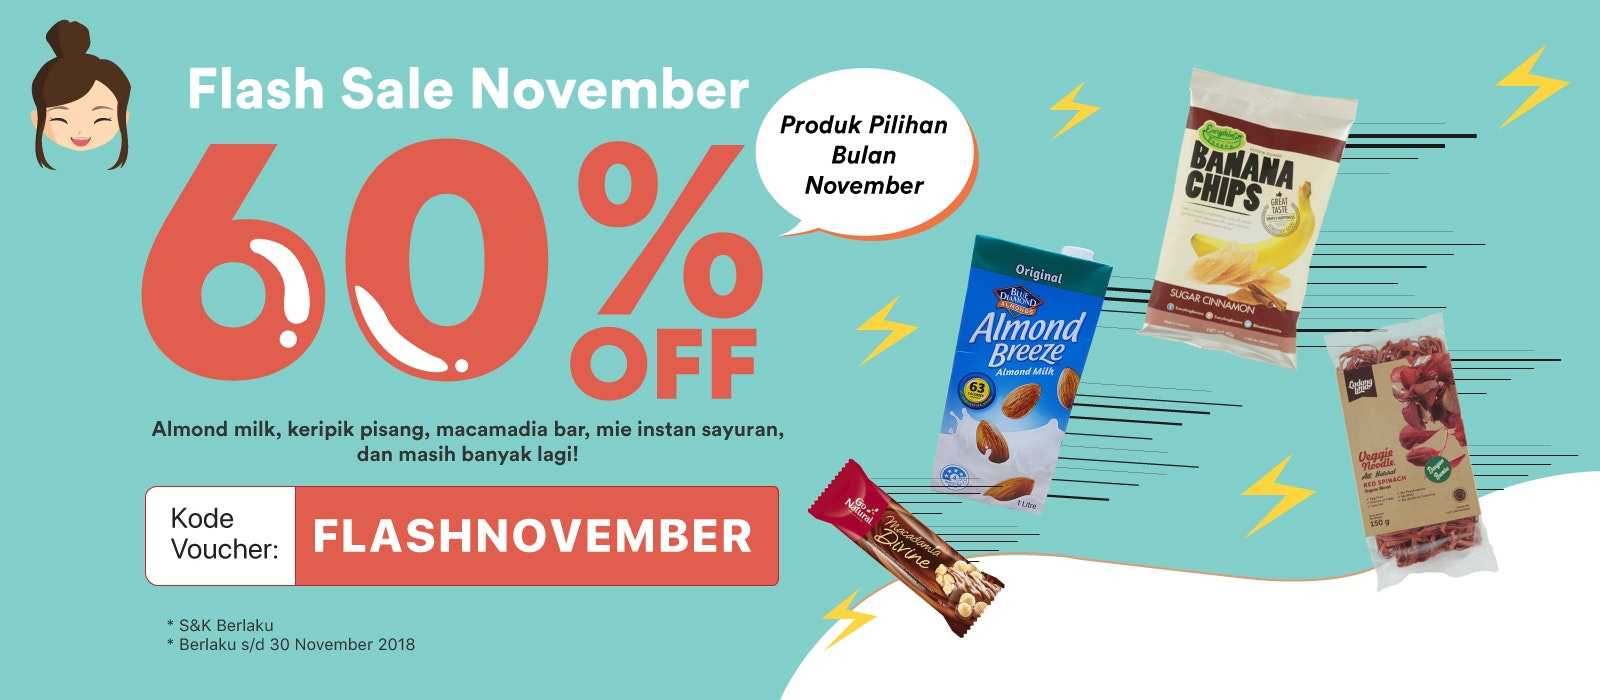 Flash Sale November